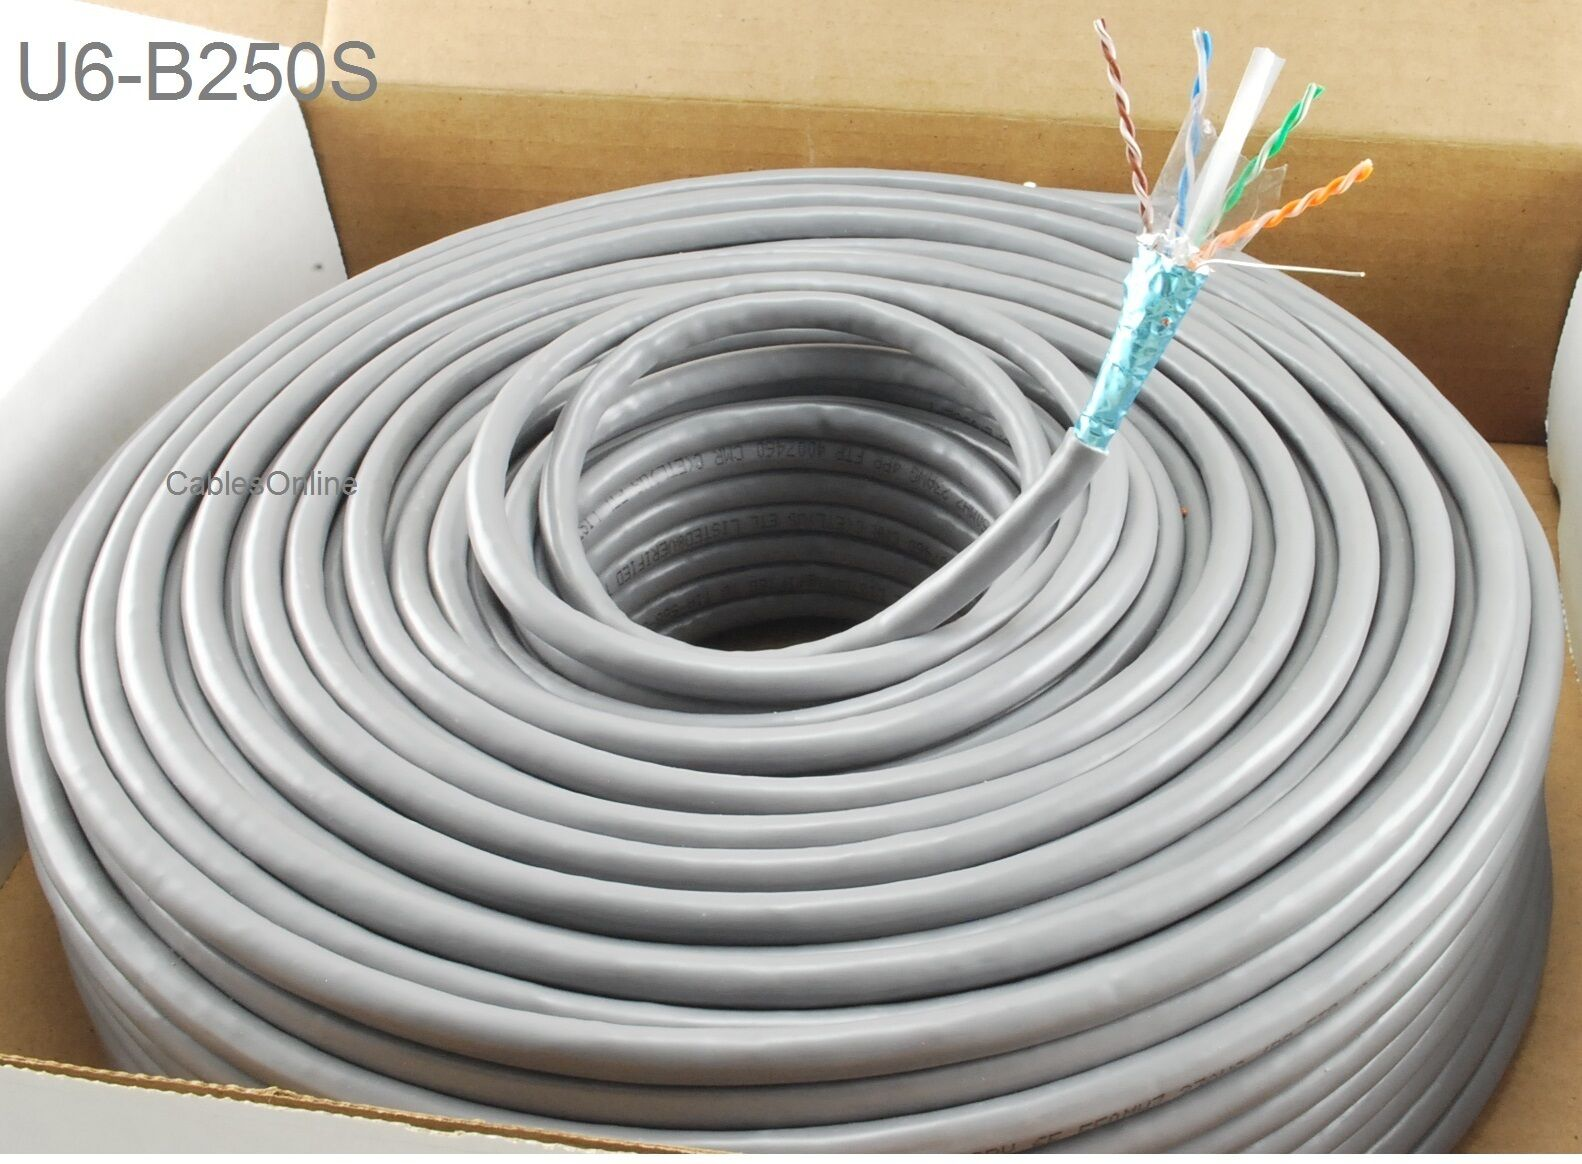 250ft Cablesonline Cat6e Shielded Rj45 Ftp Solid Copper Grey Cables Cat5e Gray Ethernet Patch Cable Snagless Molded Boot 75 Foot 1 Of 4free Shipping